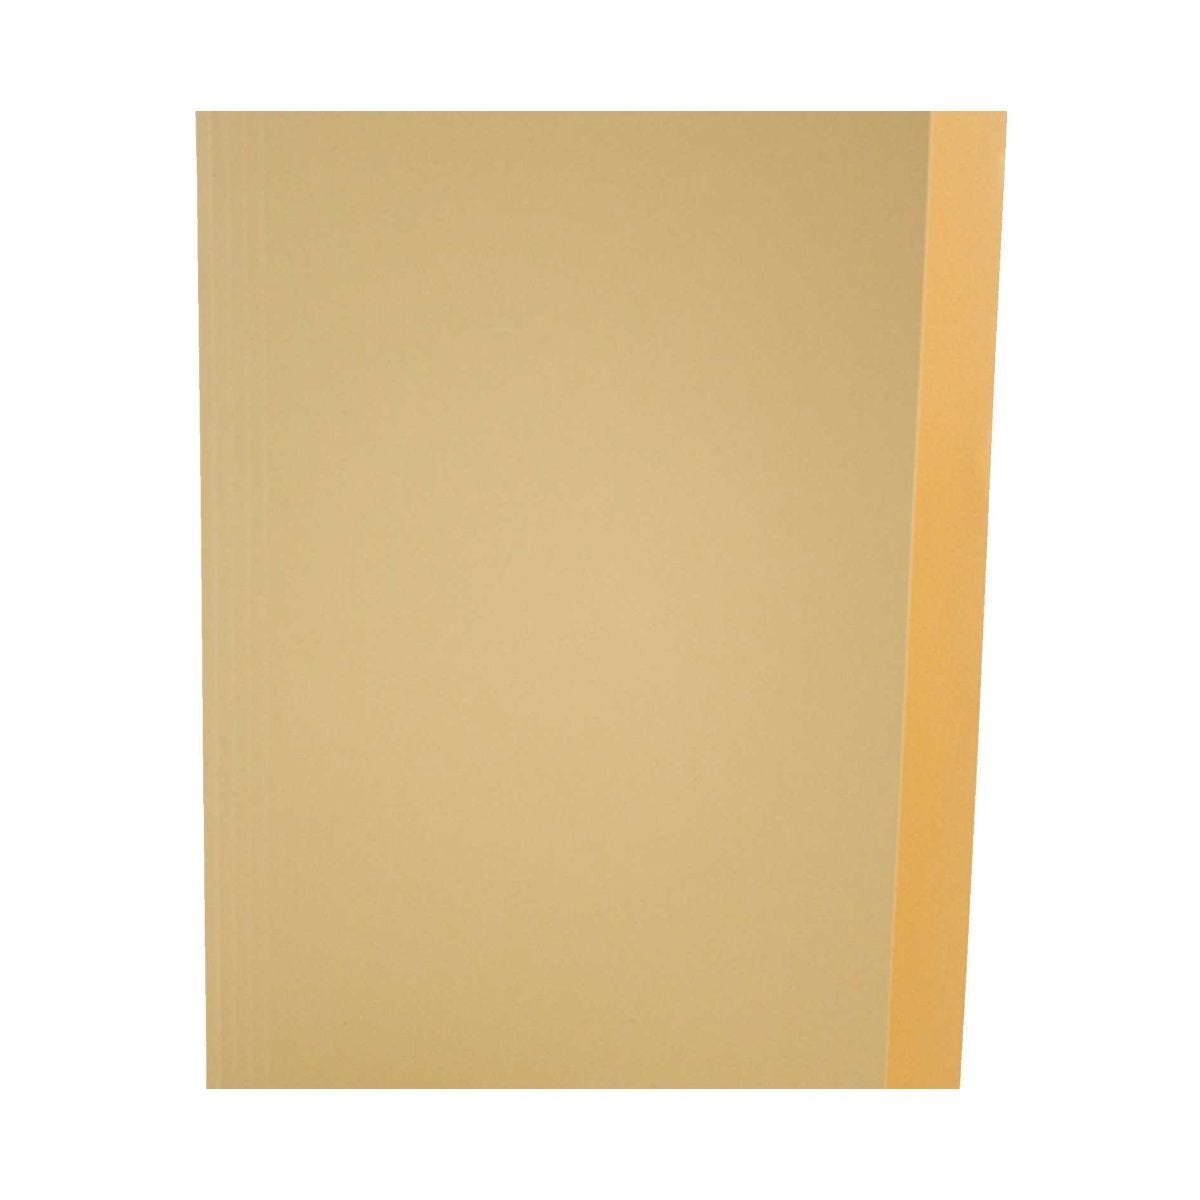 Square Cut Folders Foolscap Pack of 100 Yellow